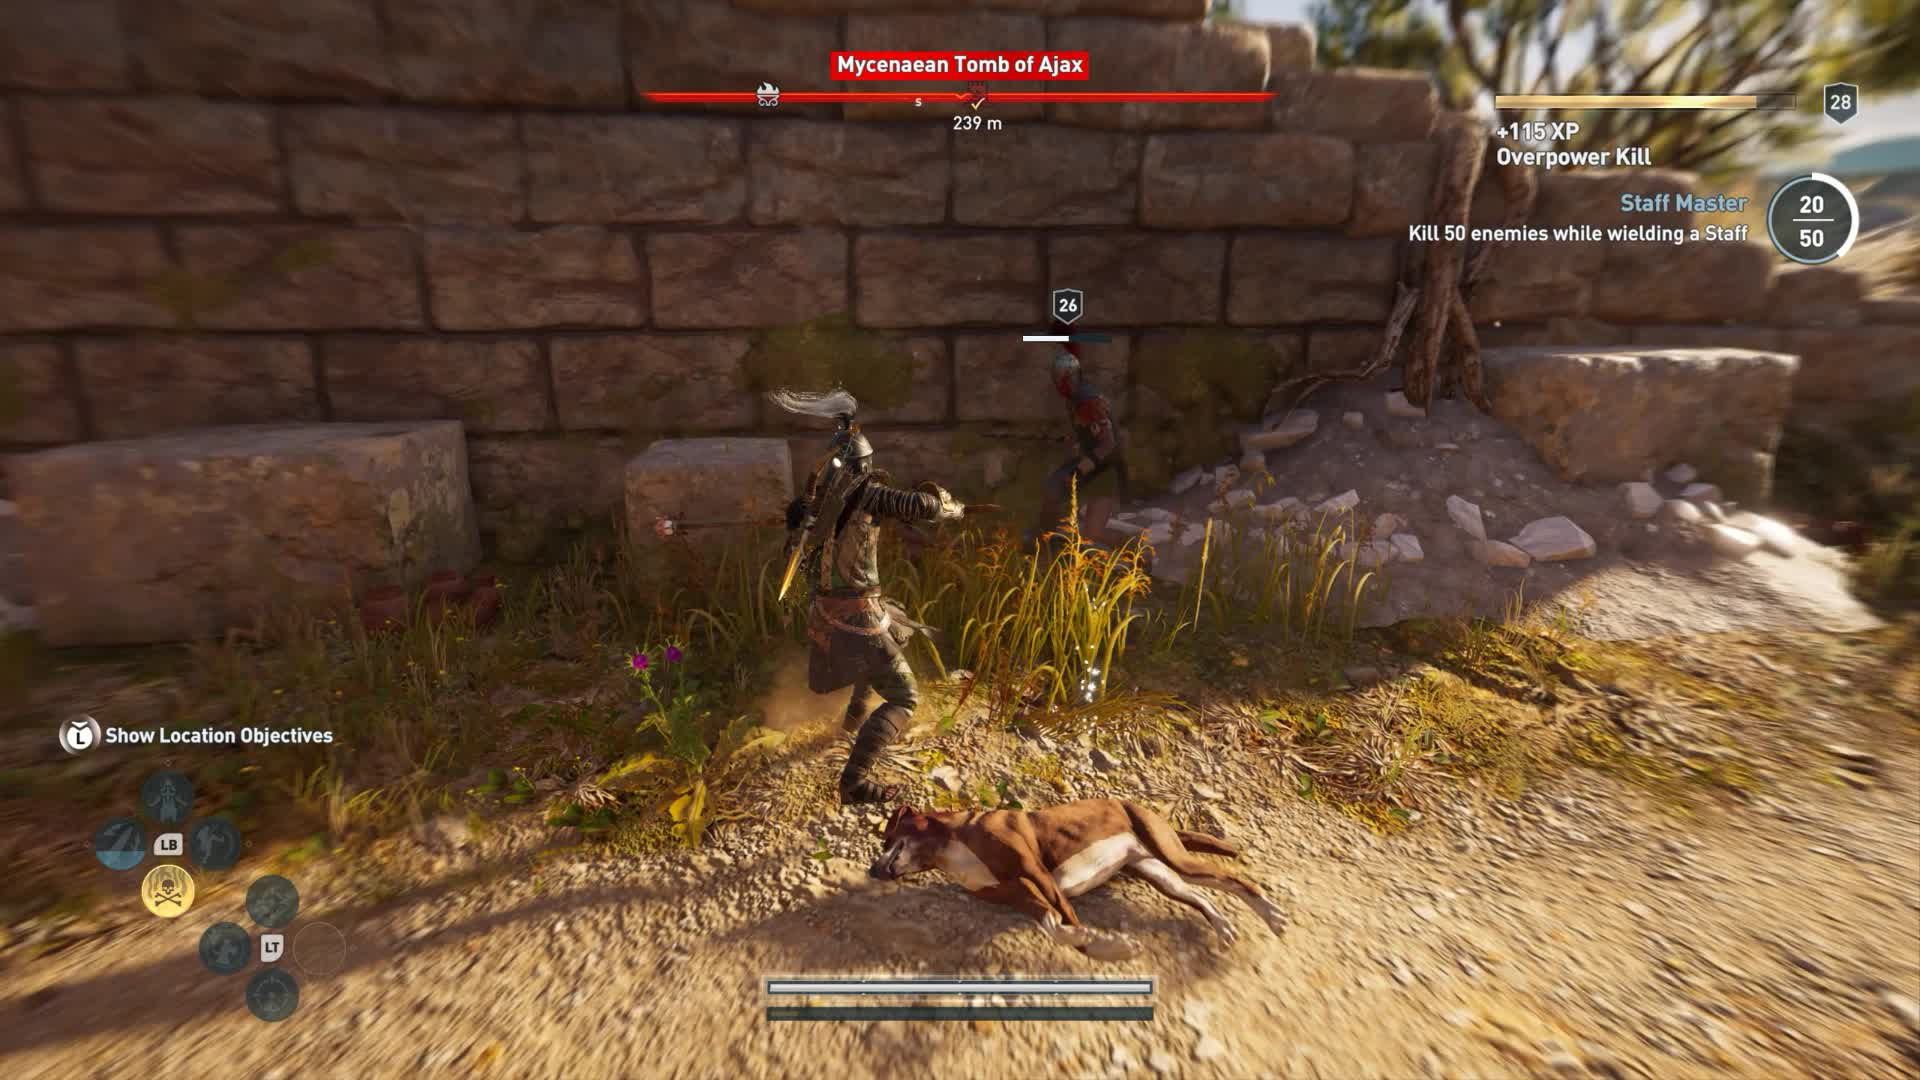 Assassin's Creed Odyssey 2018.12.26 - 00.18.34.54 (1) GIFs